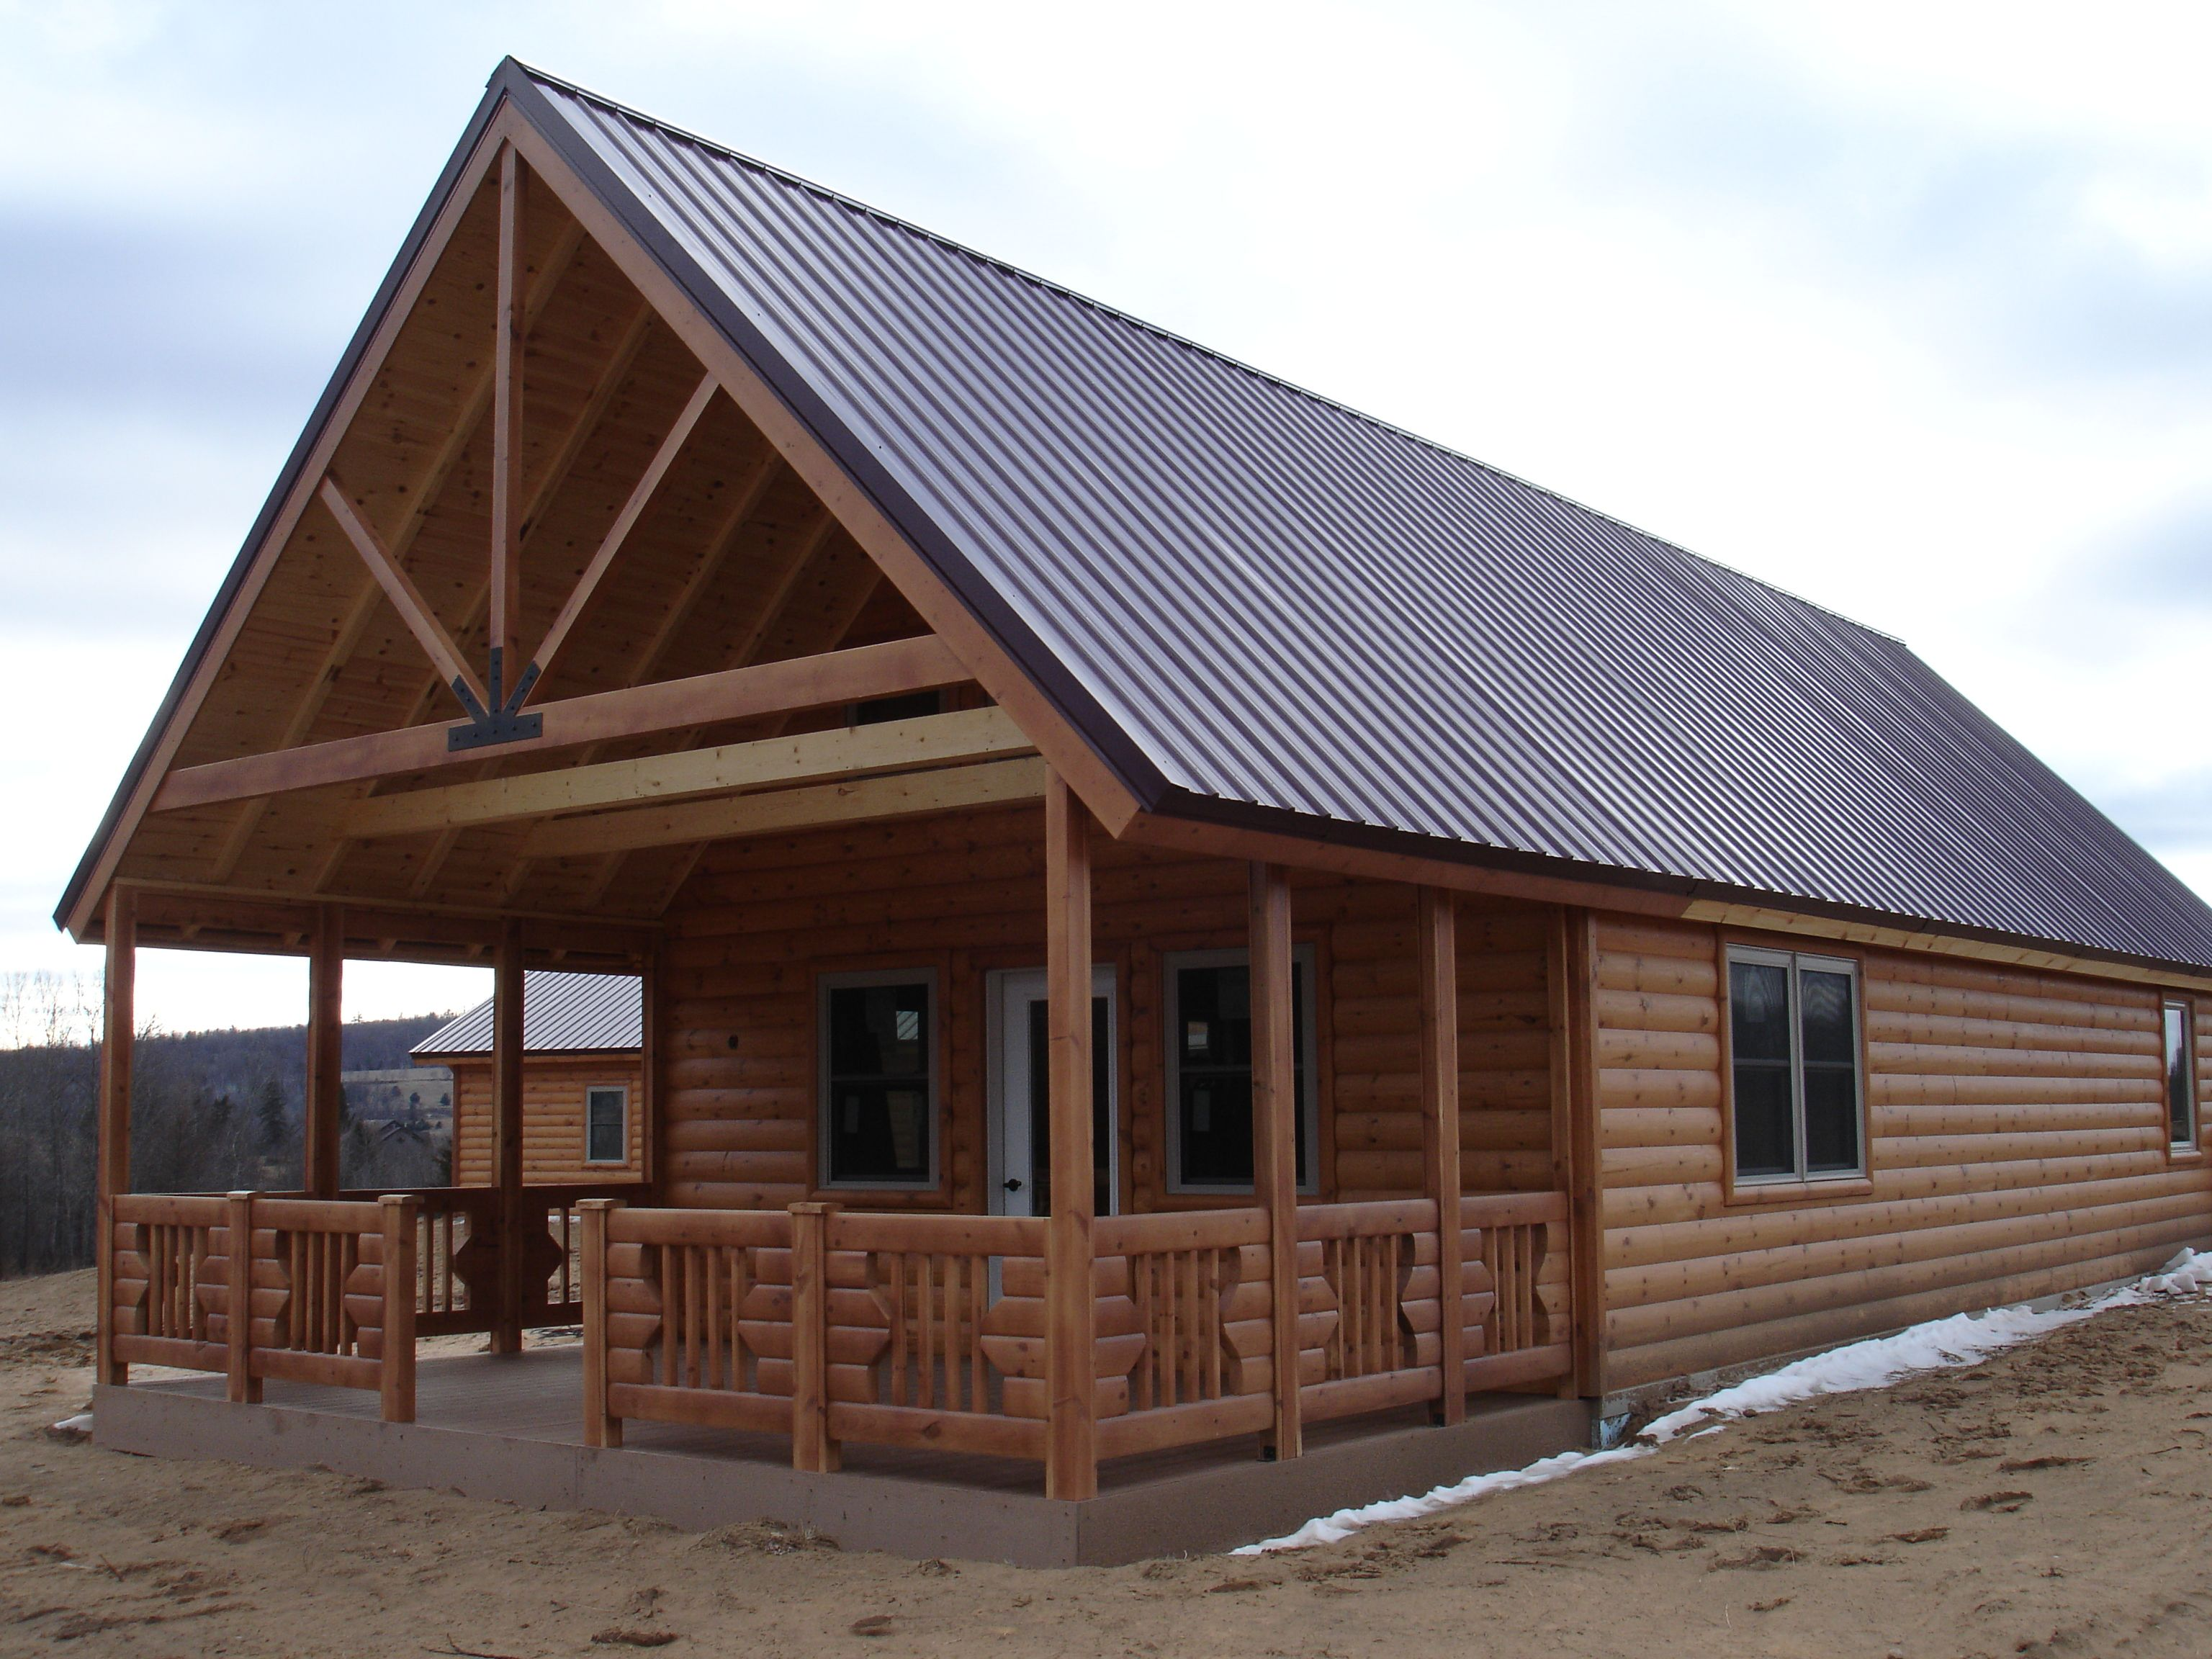 sale design from coventry for model homes the nh cabins skyline log style in our vary pictures may craftsman ourdesigns designs home actual tradesmanstyle